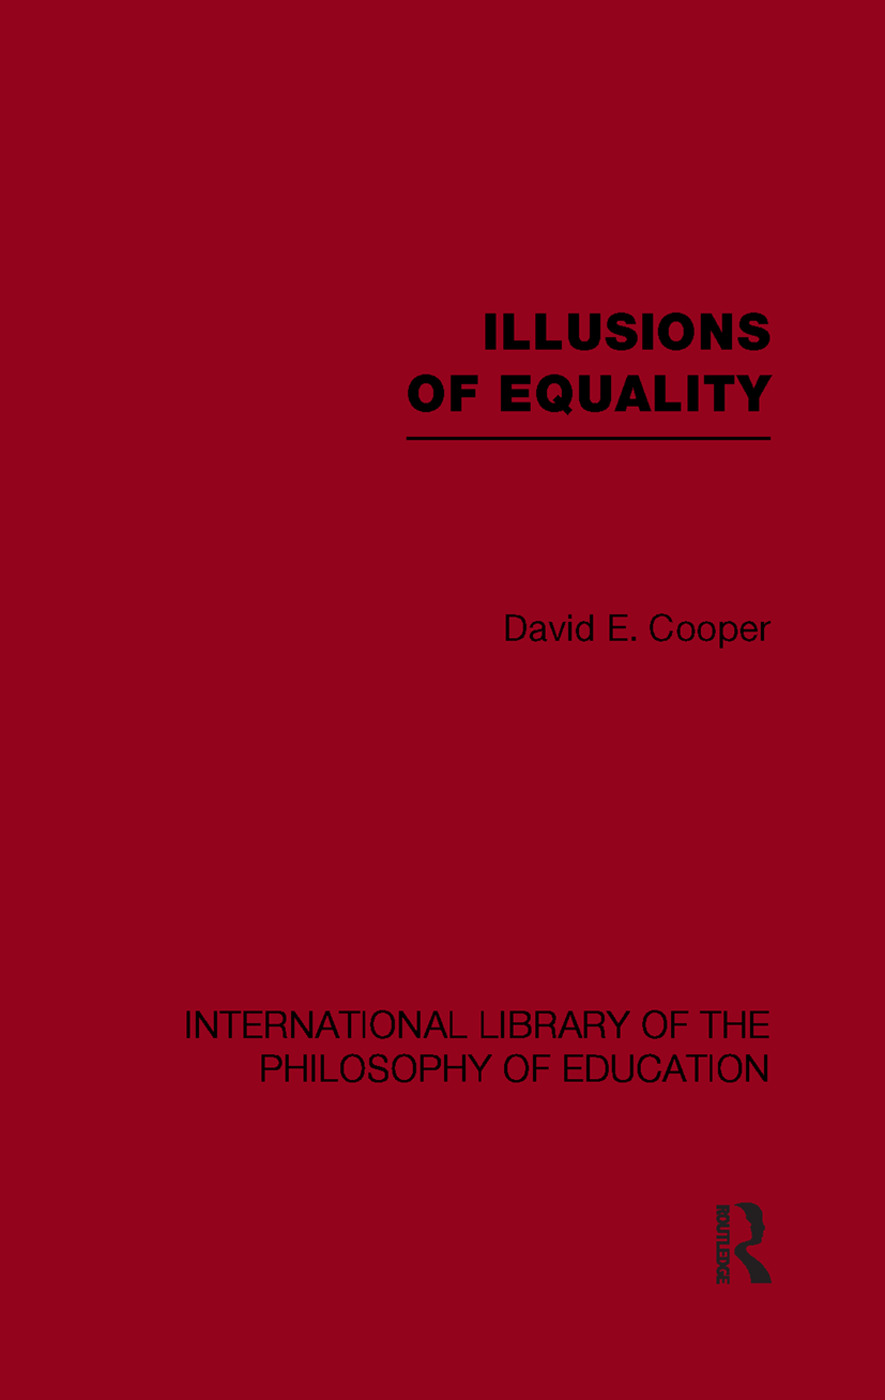 Illusions of Equality (International Library of the Philosophy of Education Volume 7)